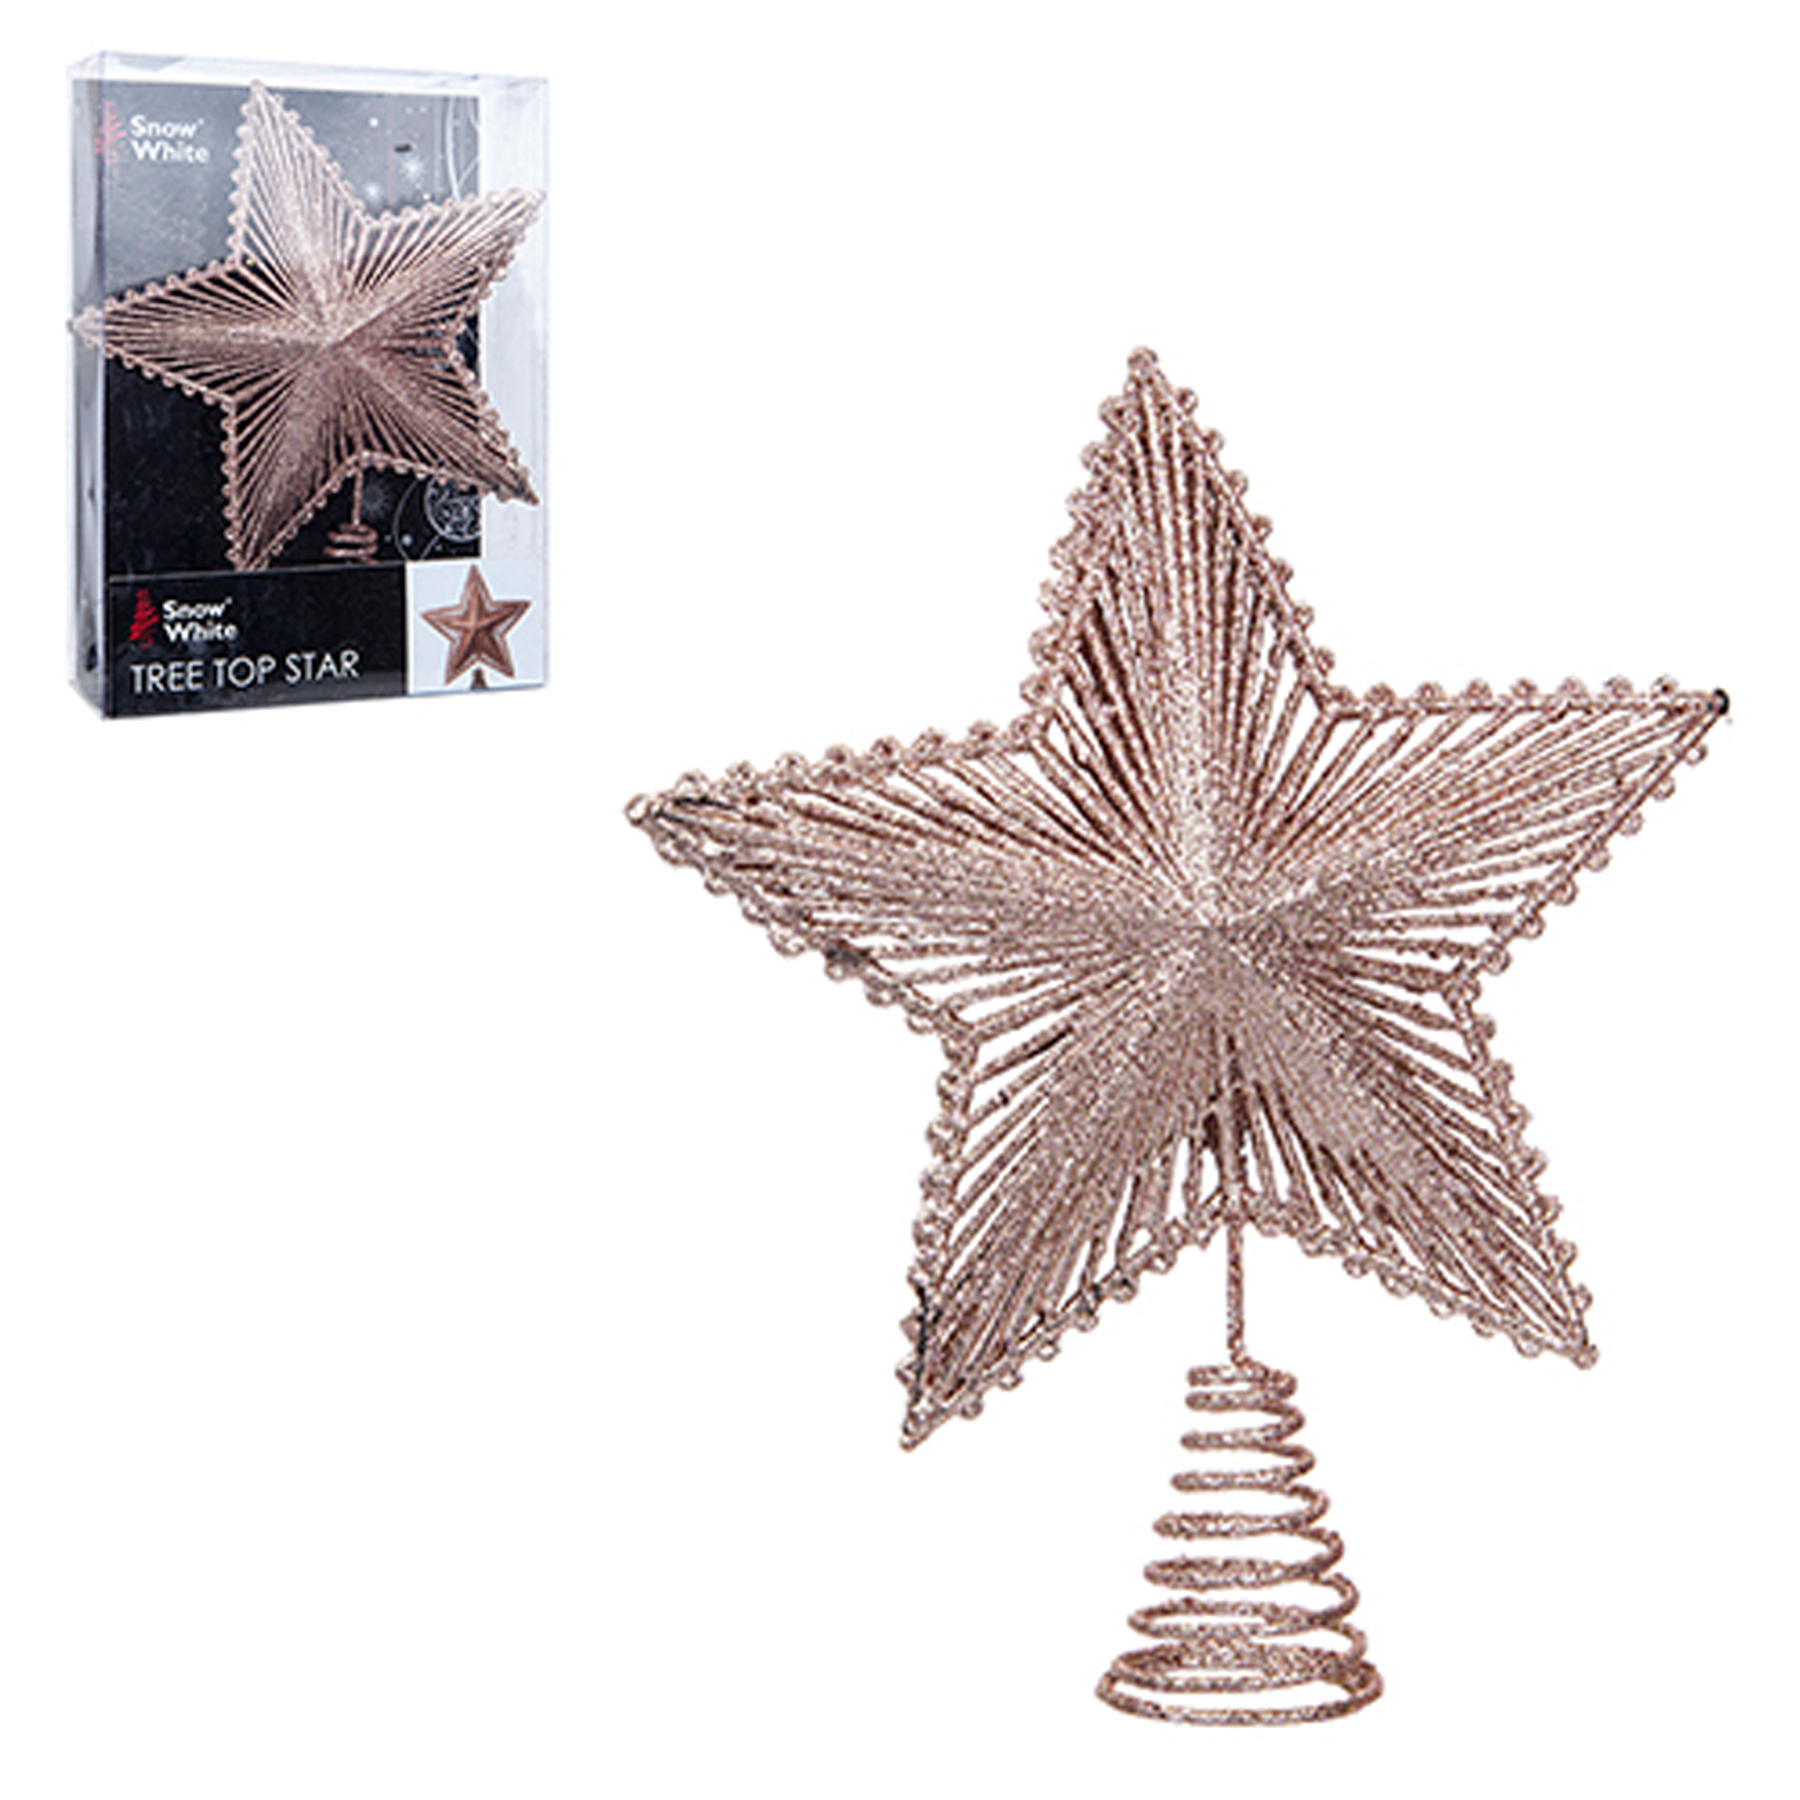 watch 7e152 8cd9f Details about Christmas Tree Top Star 200mm Full Glitter Decoration - Rose  Gold